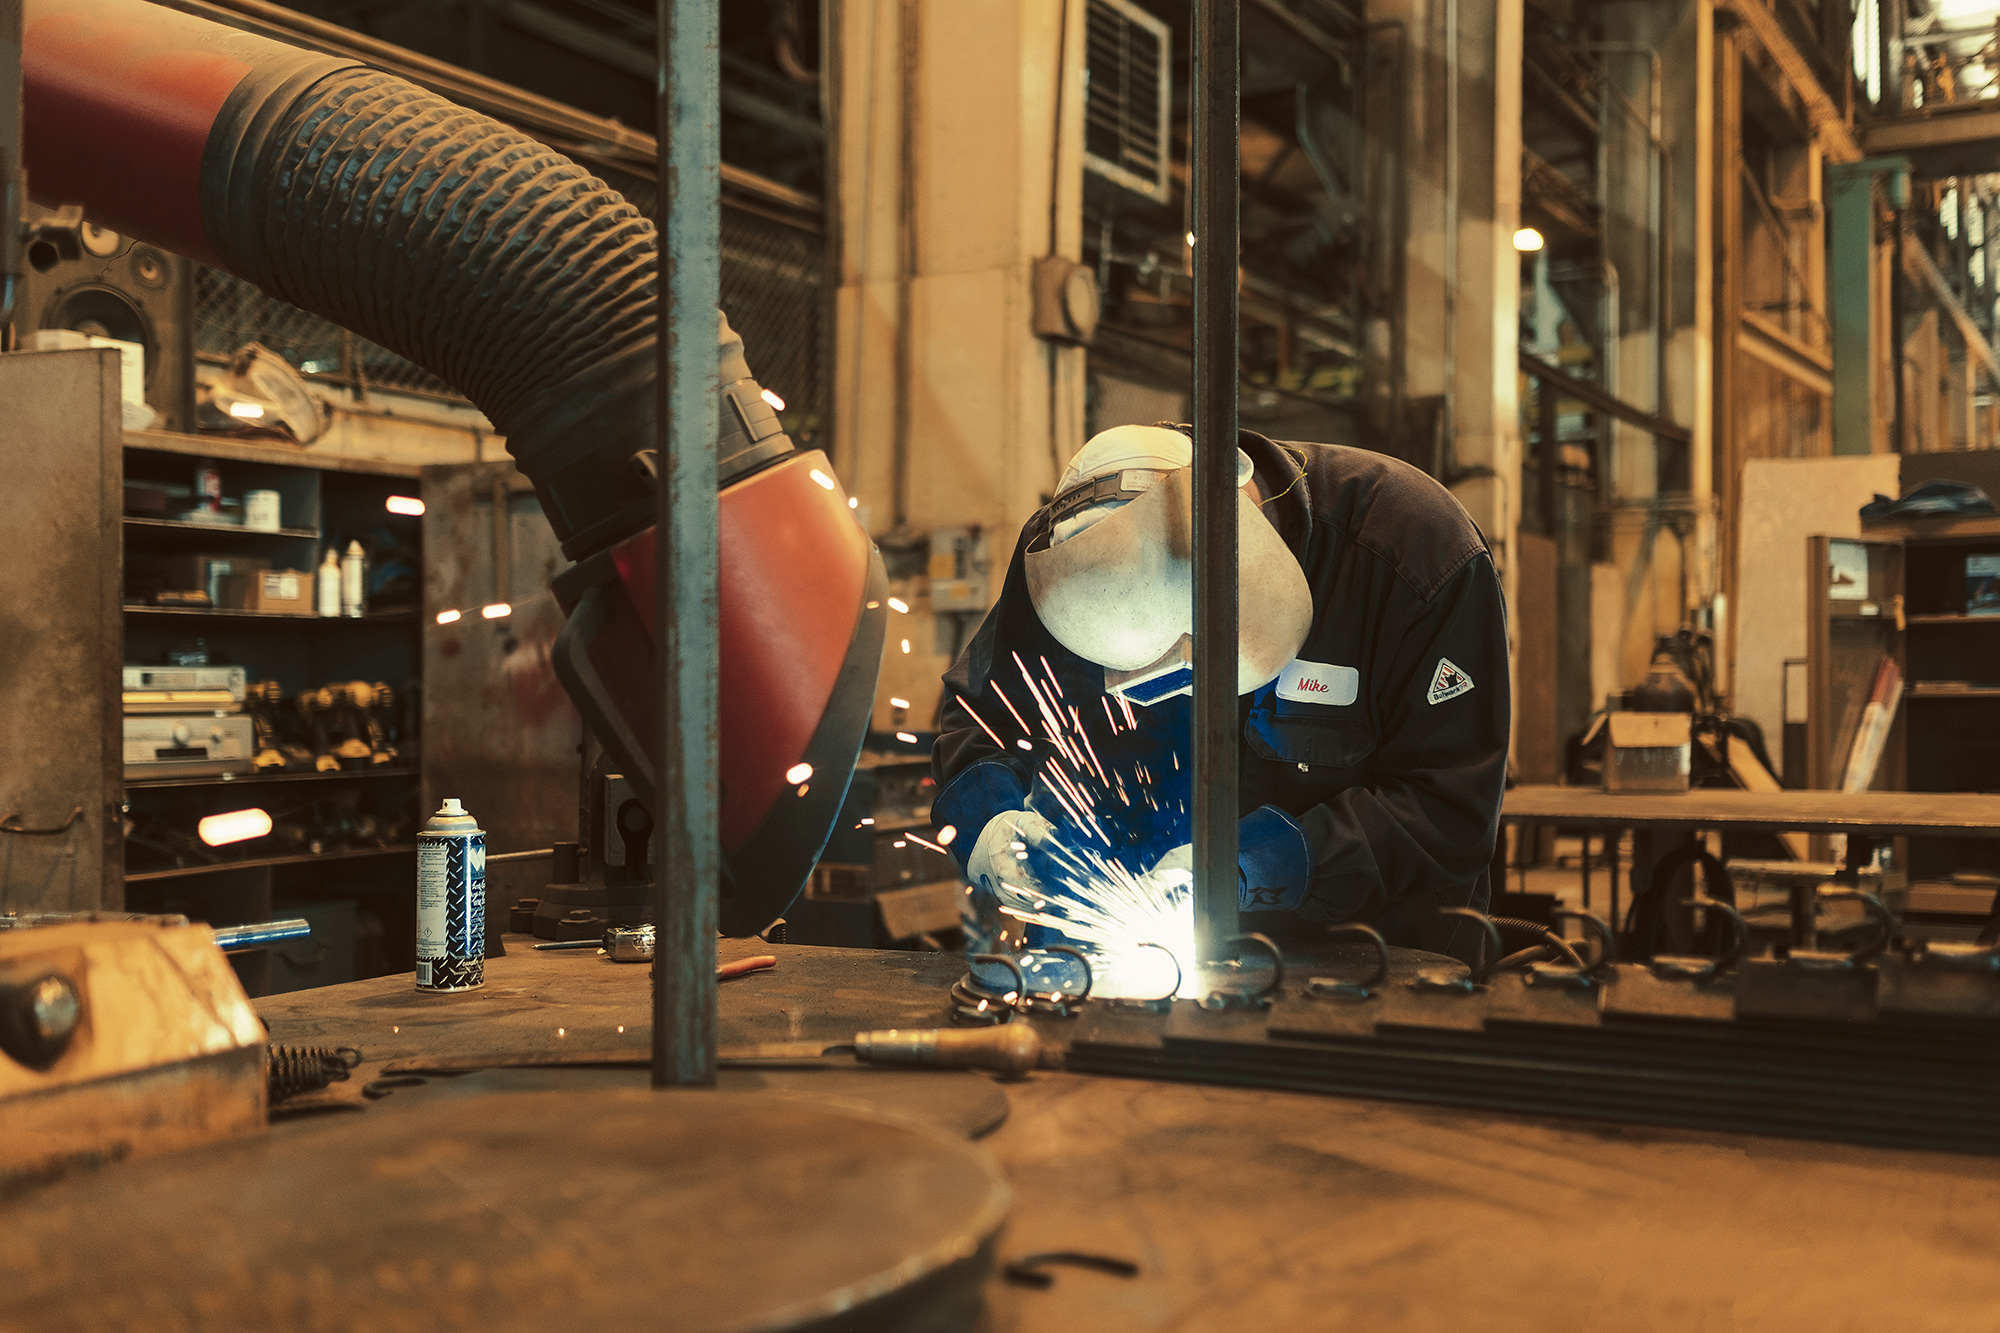 An Exxon Mobil employee welds in the shop on location in Beaumont, Texas photographed by photographer, Todd Spoth.